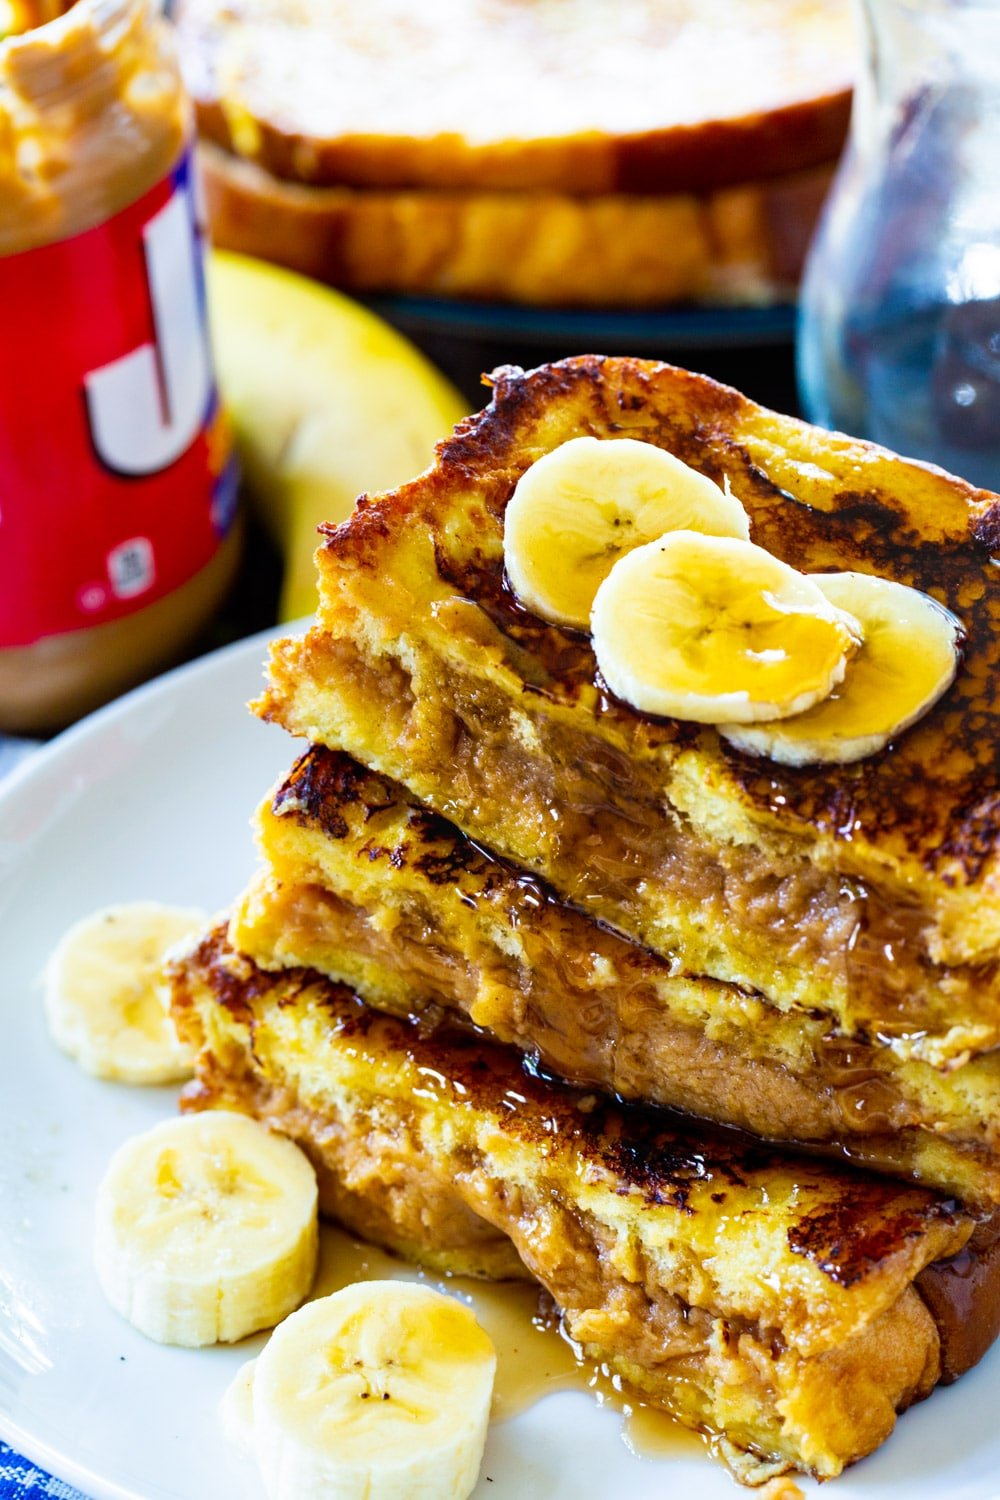 French Toast topped with banana slices on a plate.